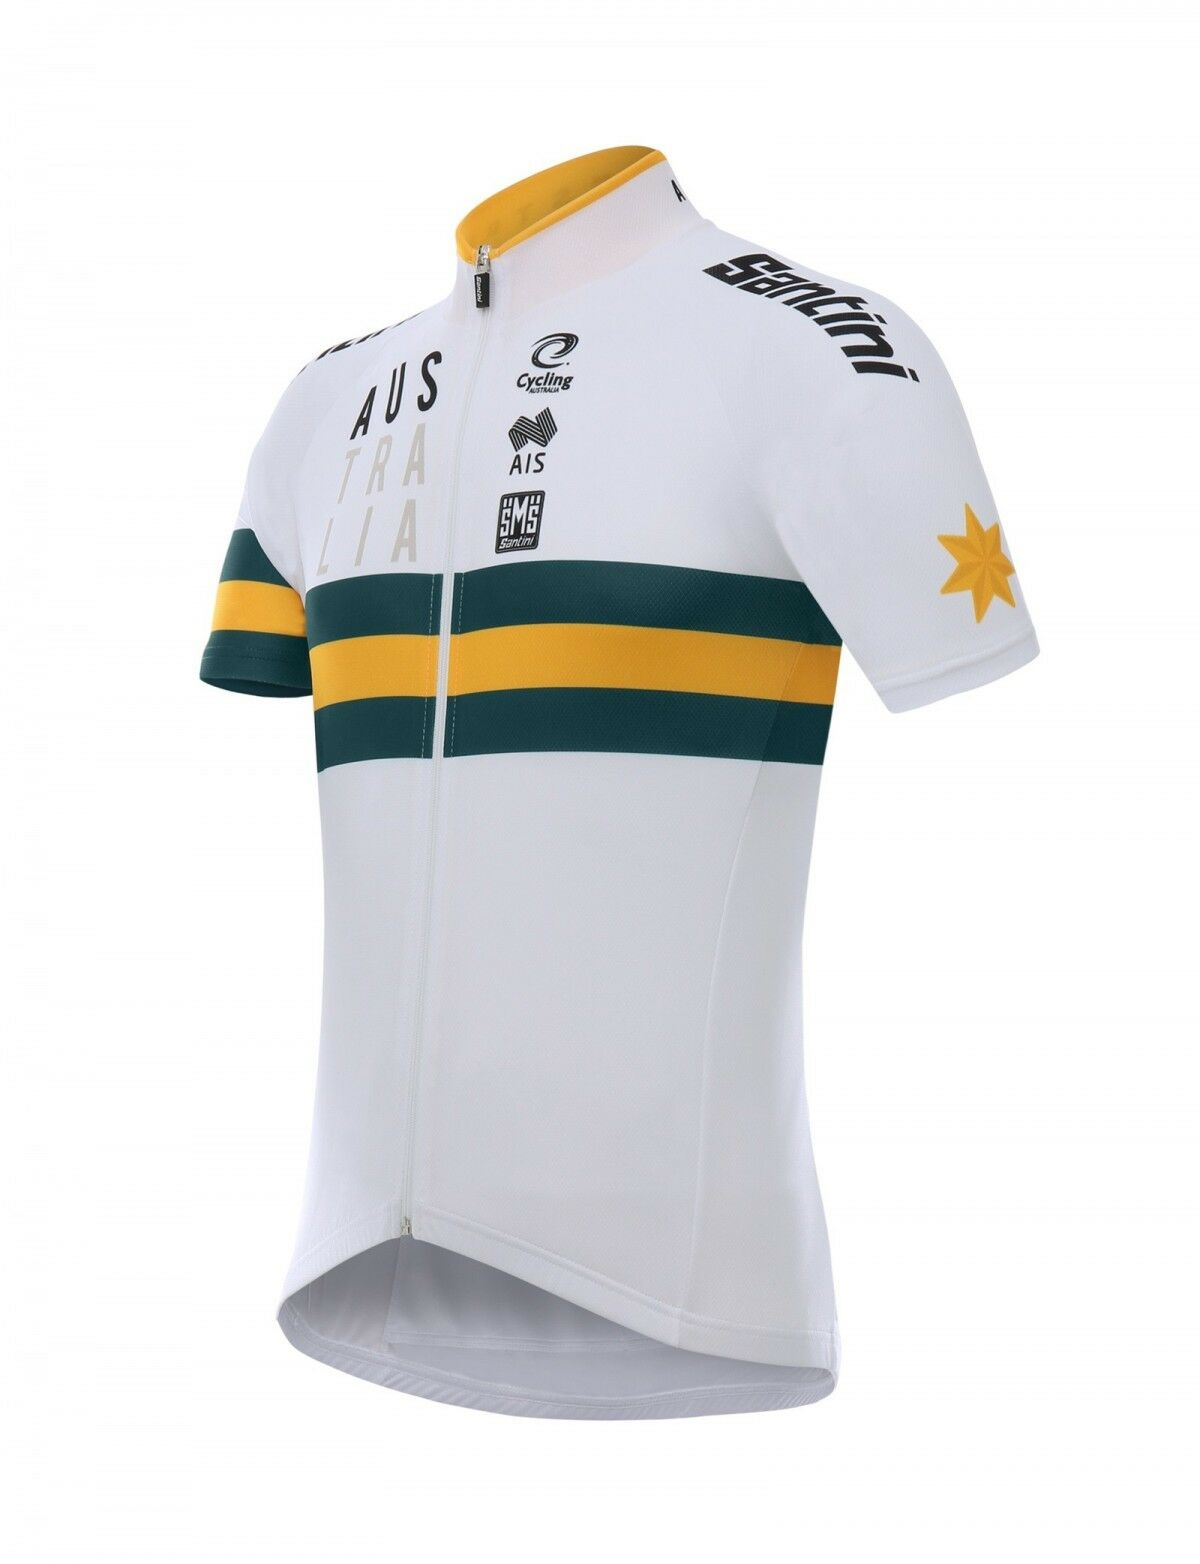 2017 18  Men's  AUSTRALIA NAT'L TEAM Short Sleeve Cycling Jersey by Santini